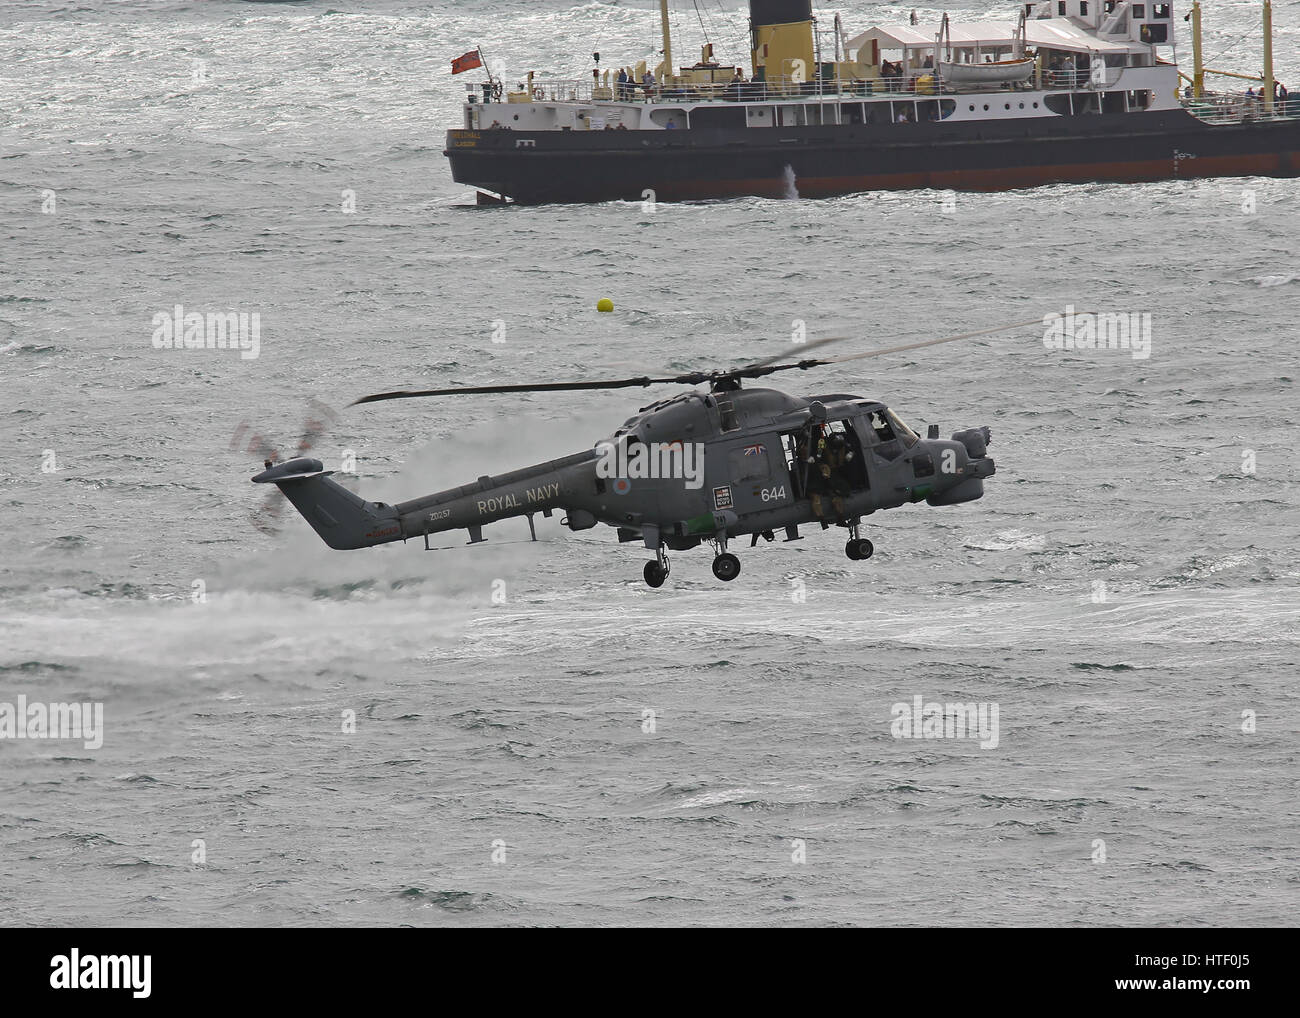 A Royal Navy Lynx HMA.8 hovering low over the sea during the Bournemouth Air Festival, UK - Stock Image